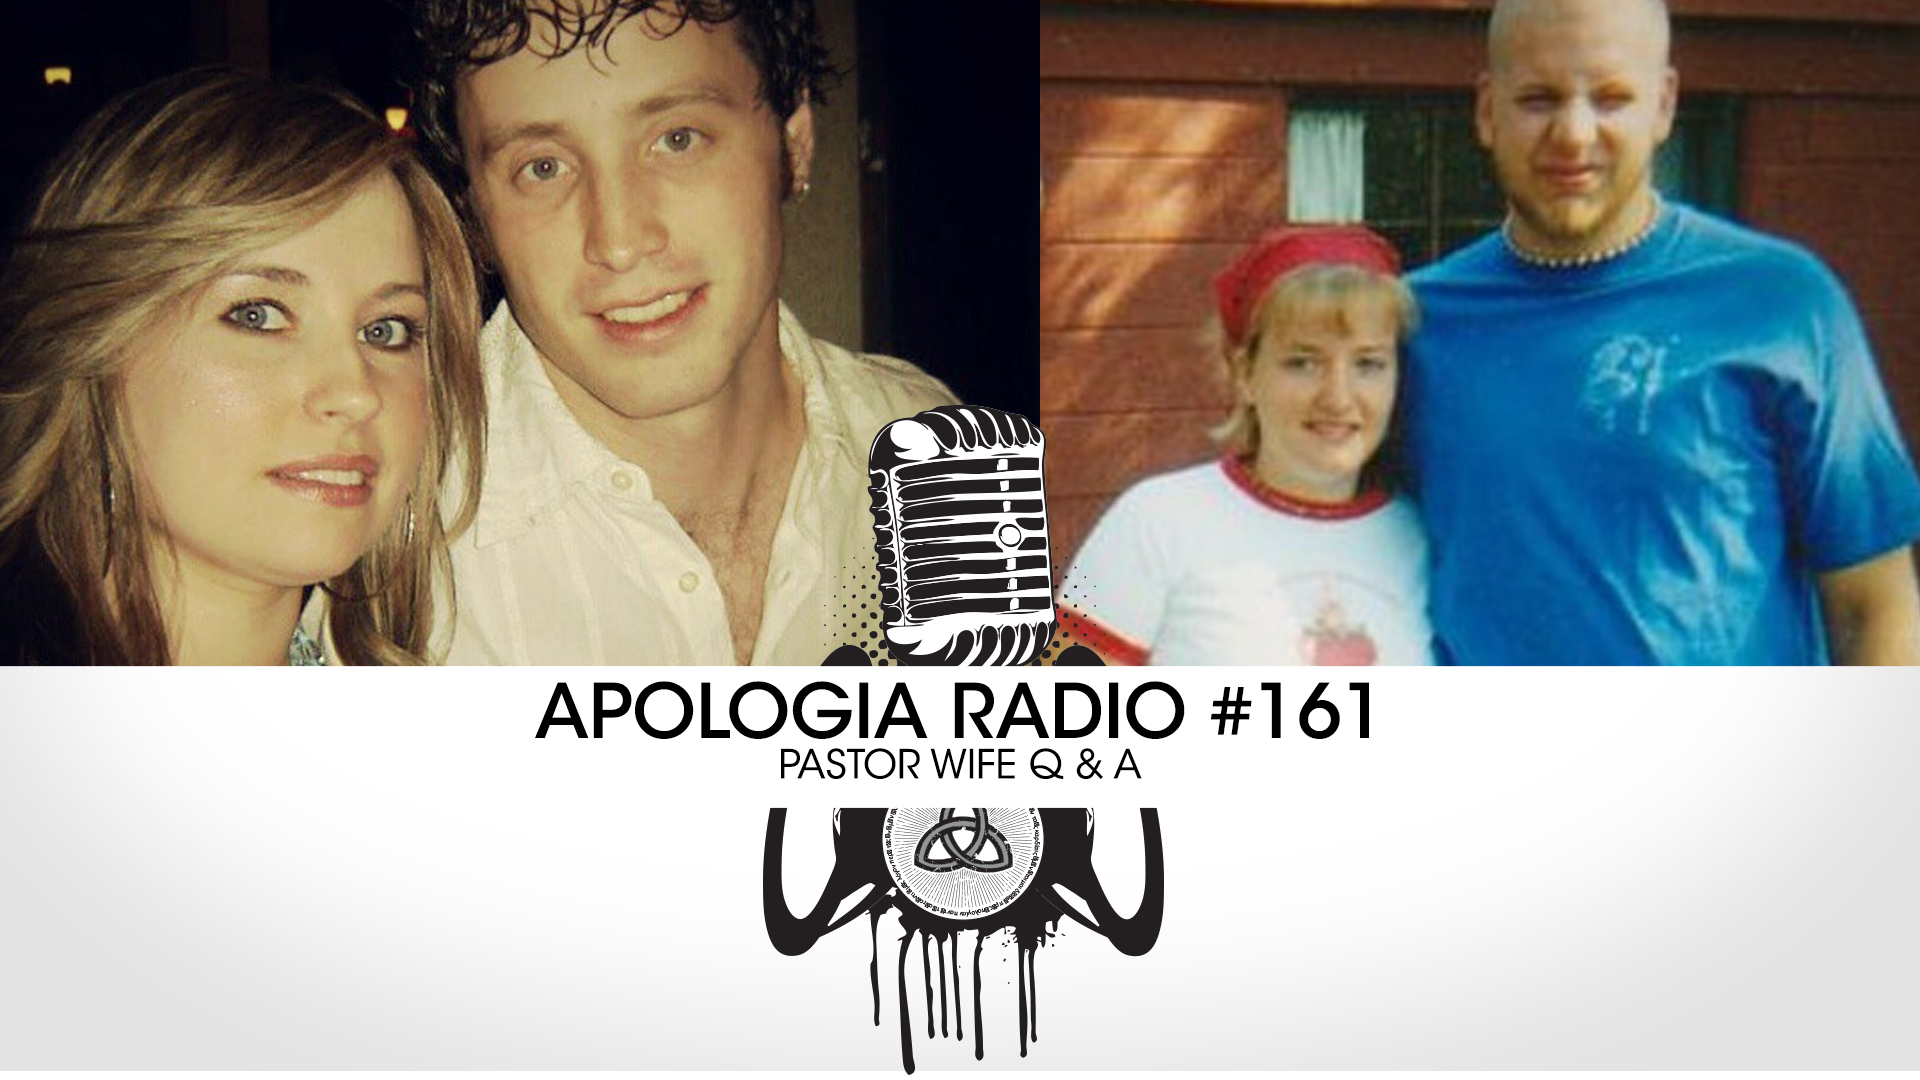 Apologia-Radio-161-Pastor-Wife